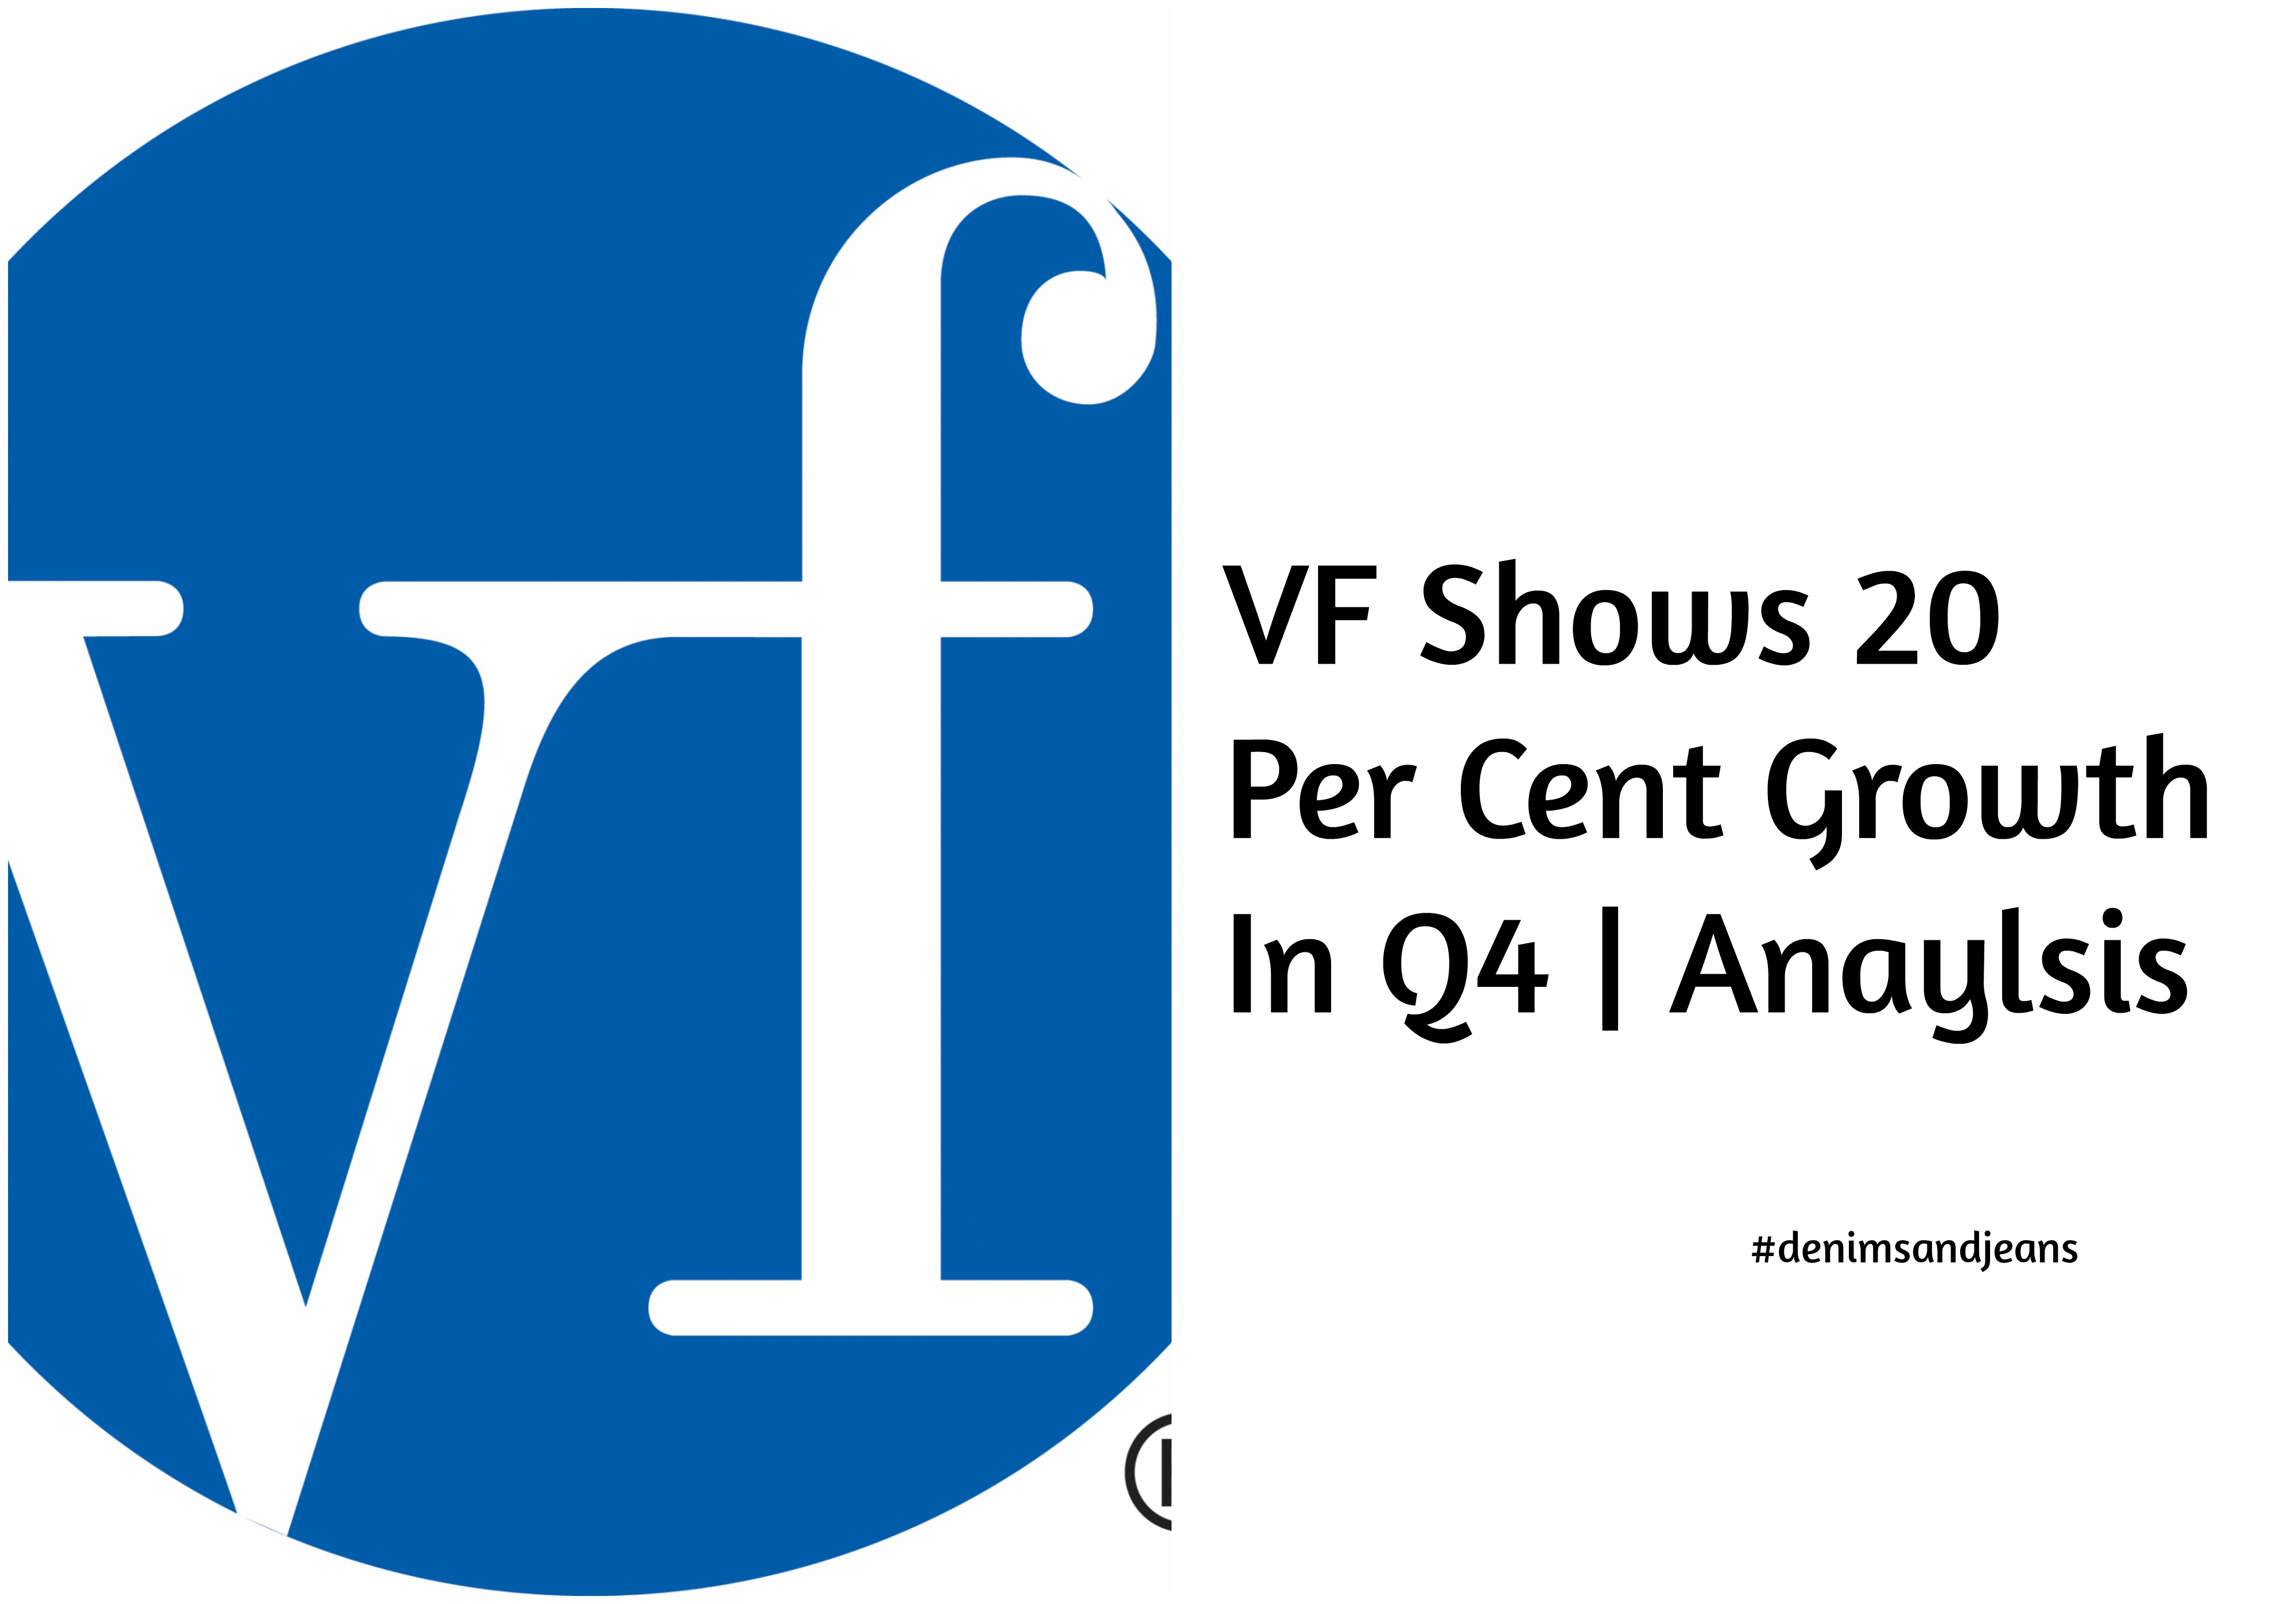 VF Shows 20 Per Cent Growth In Q4 | Anaylsis